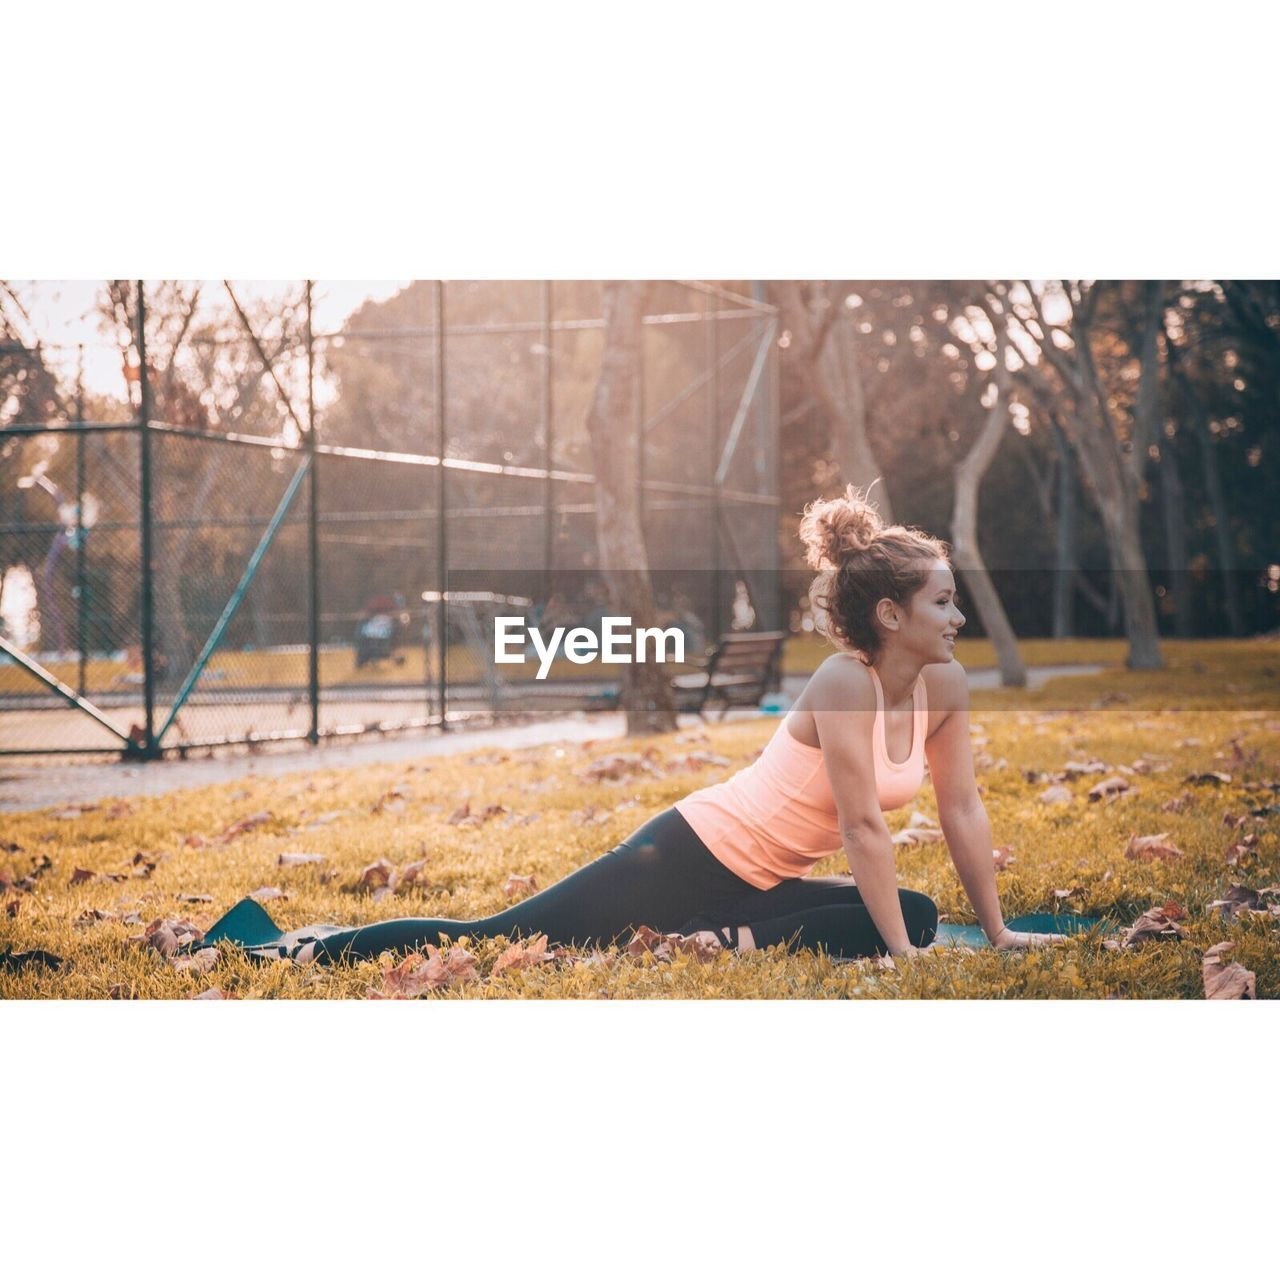 full length, lifestyles, exercising, real people, one person, day, leisure activity, sports clothing, outdoors, healthy lifestyle, balance, young women, young adult, smiling, tree, grass, only women, adult, people, adults only